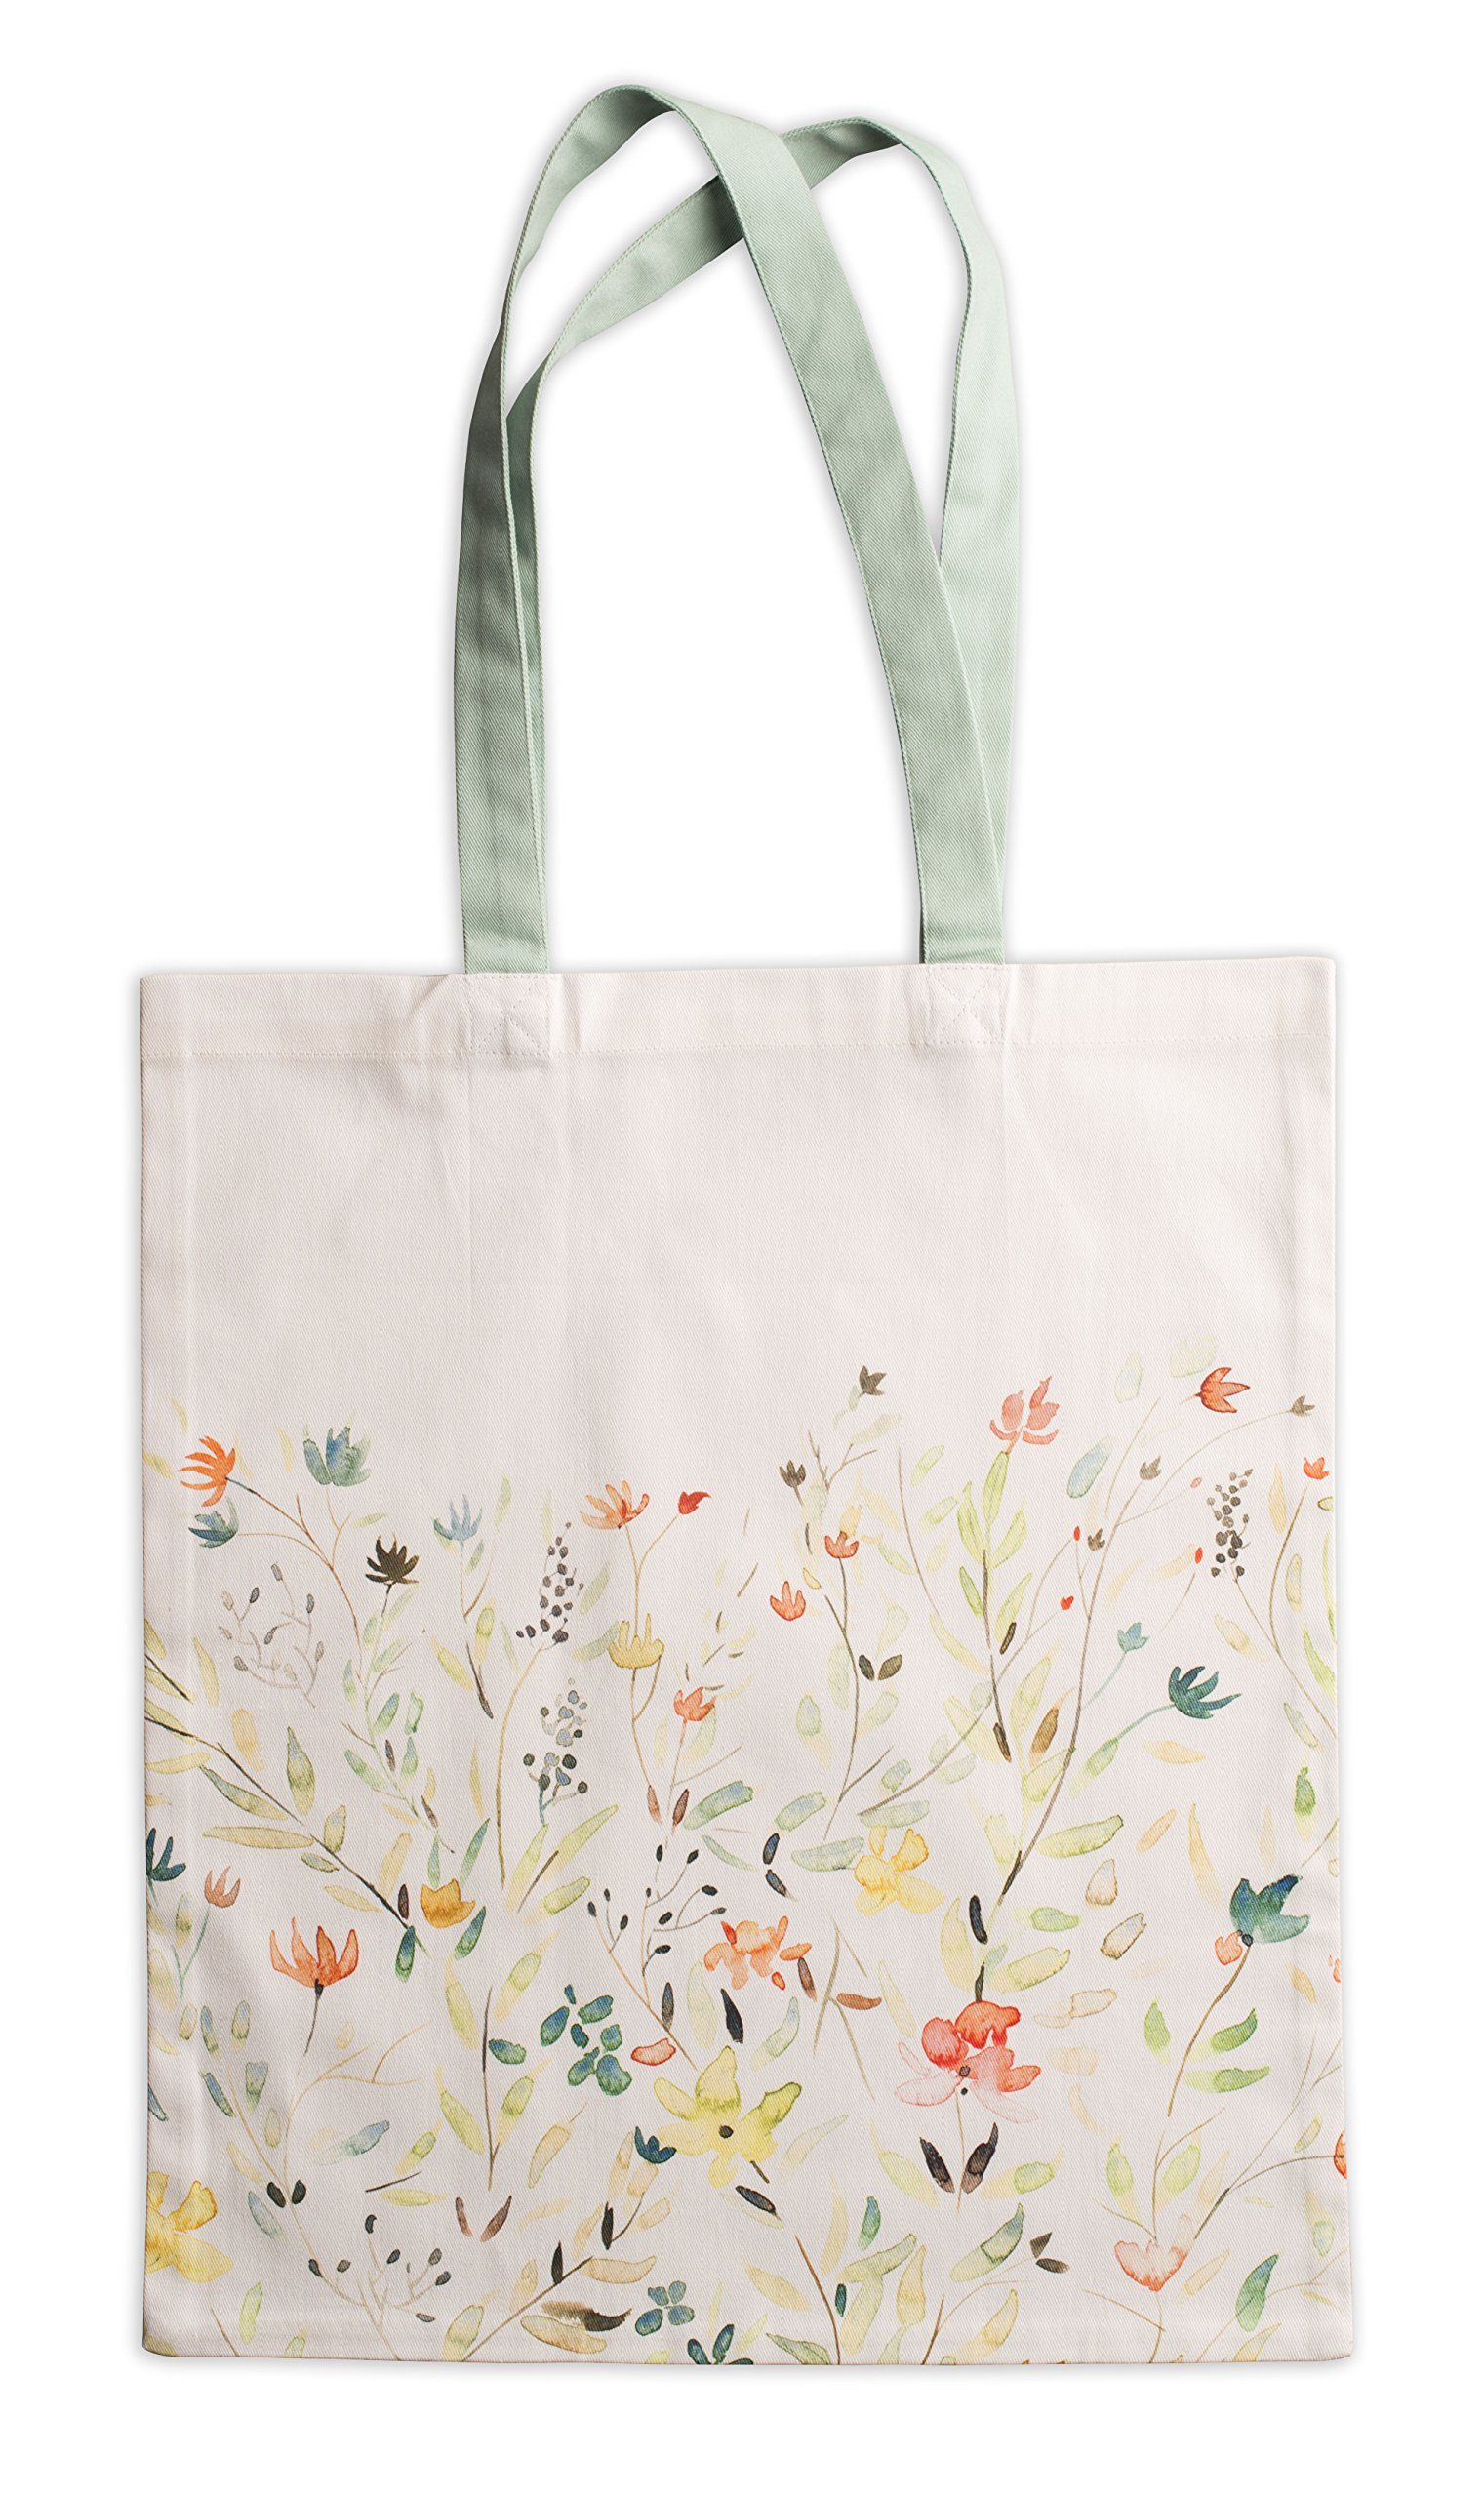 Maison d' Hermine Colmar 100% Cotton Tote Bag 14 Inch by 17 Inch